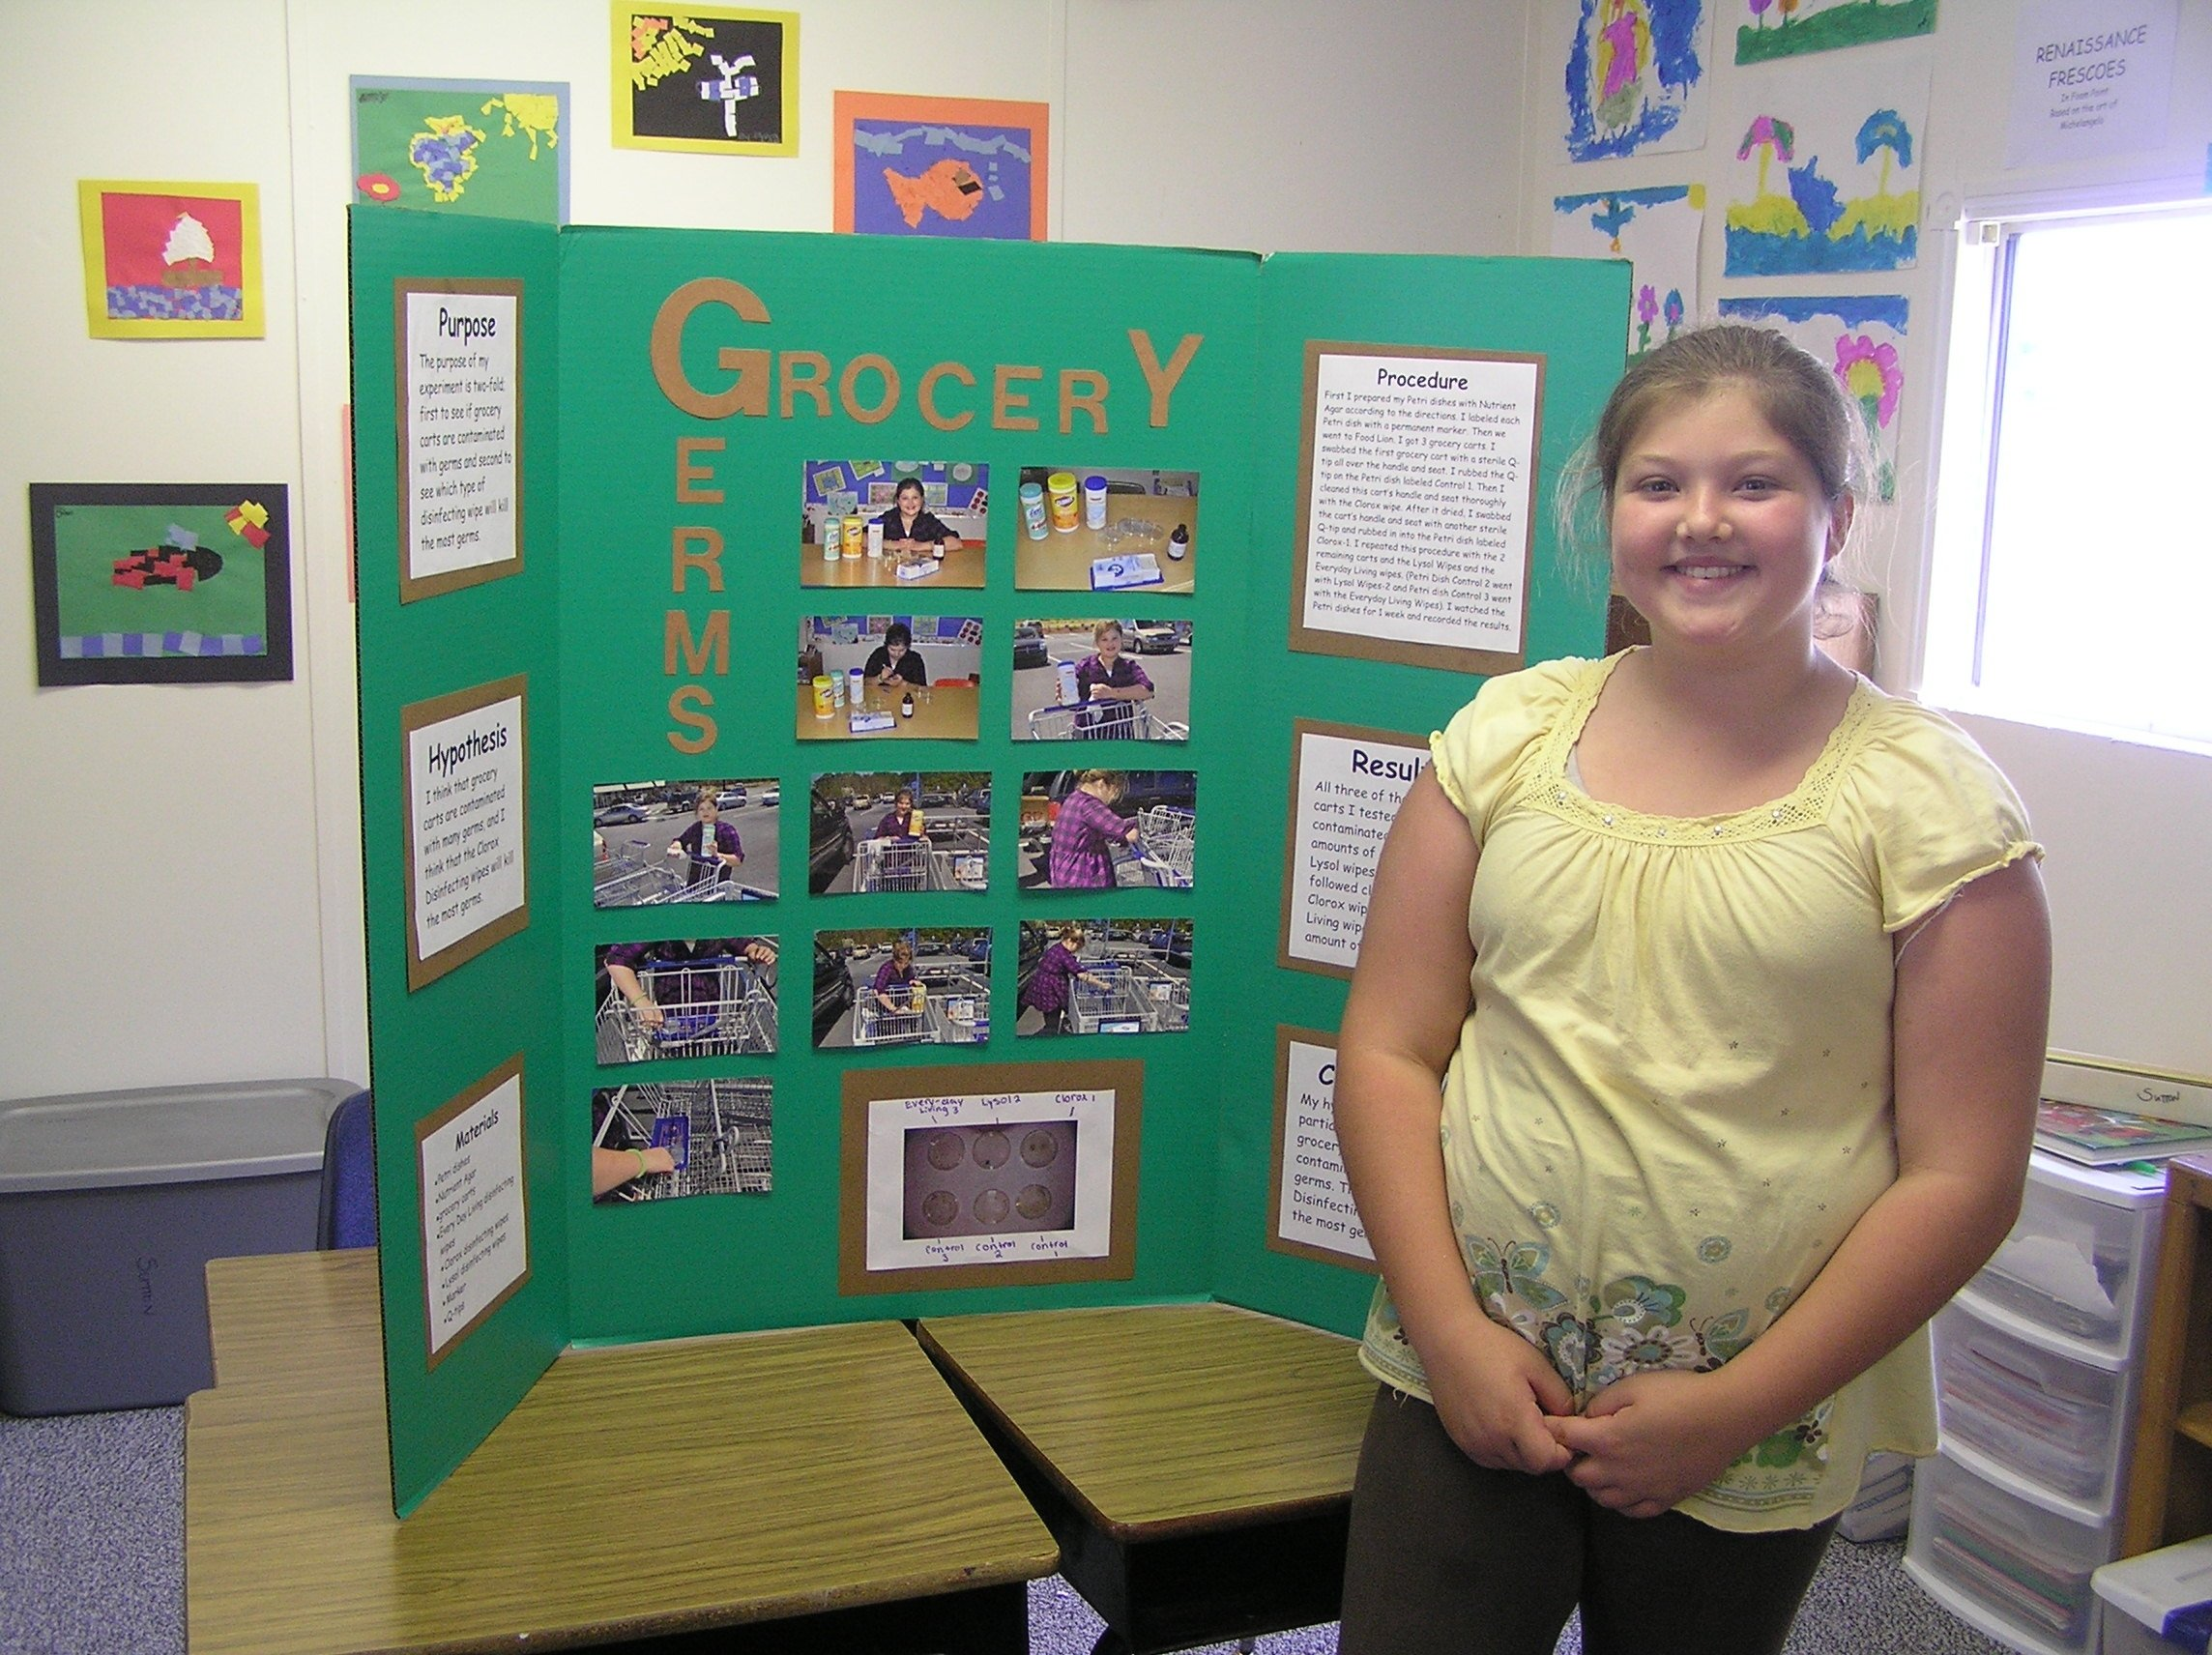 10 Spectacular Science Projects Ideas For 5Th Graders grocery germs whats on that cart handle science fair 2 2021